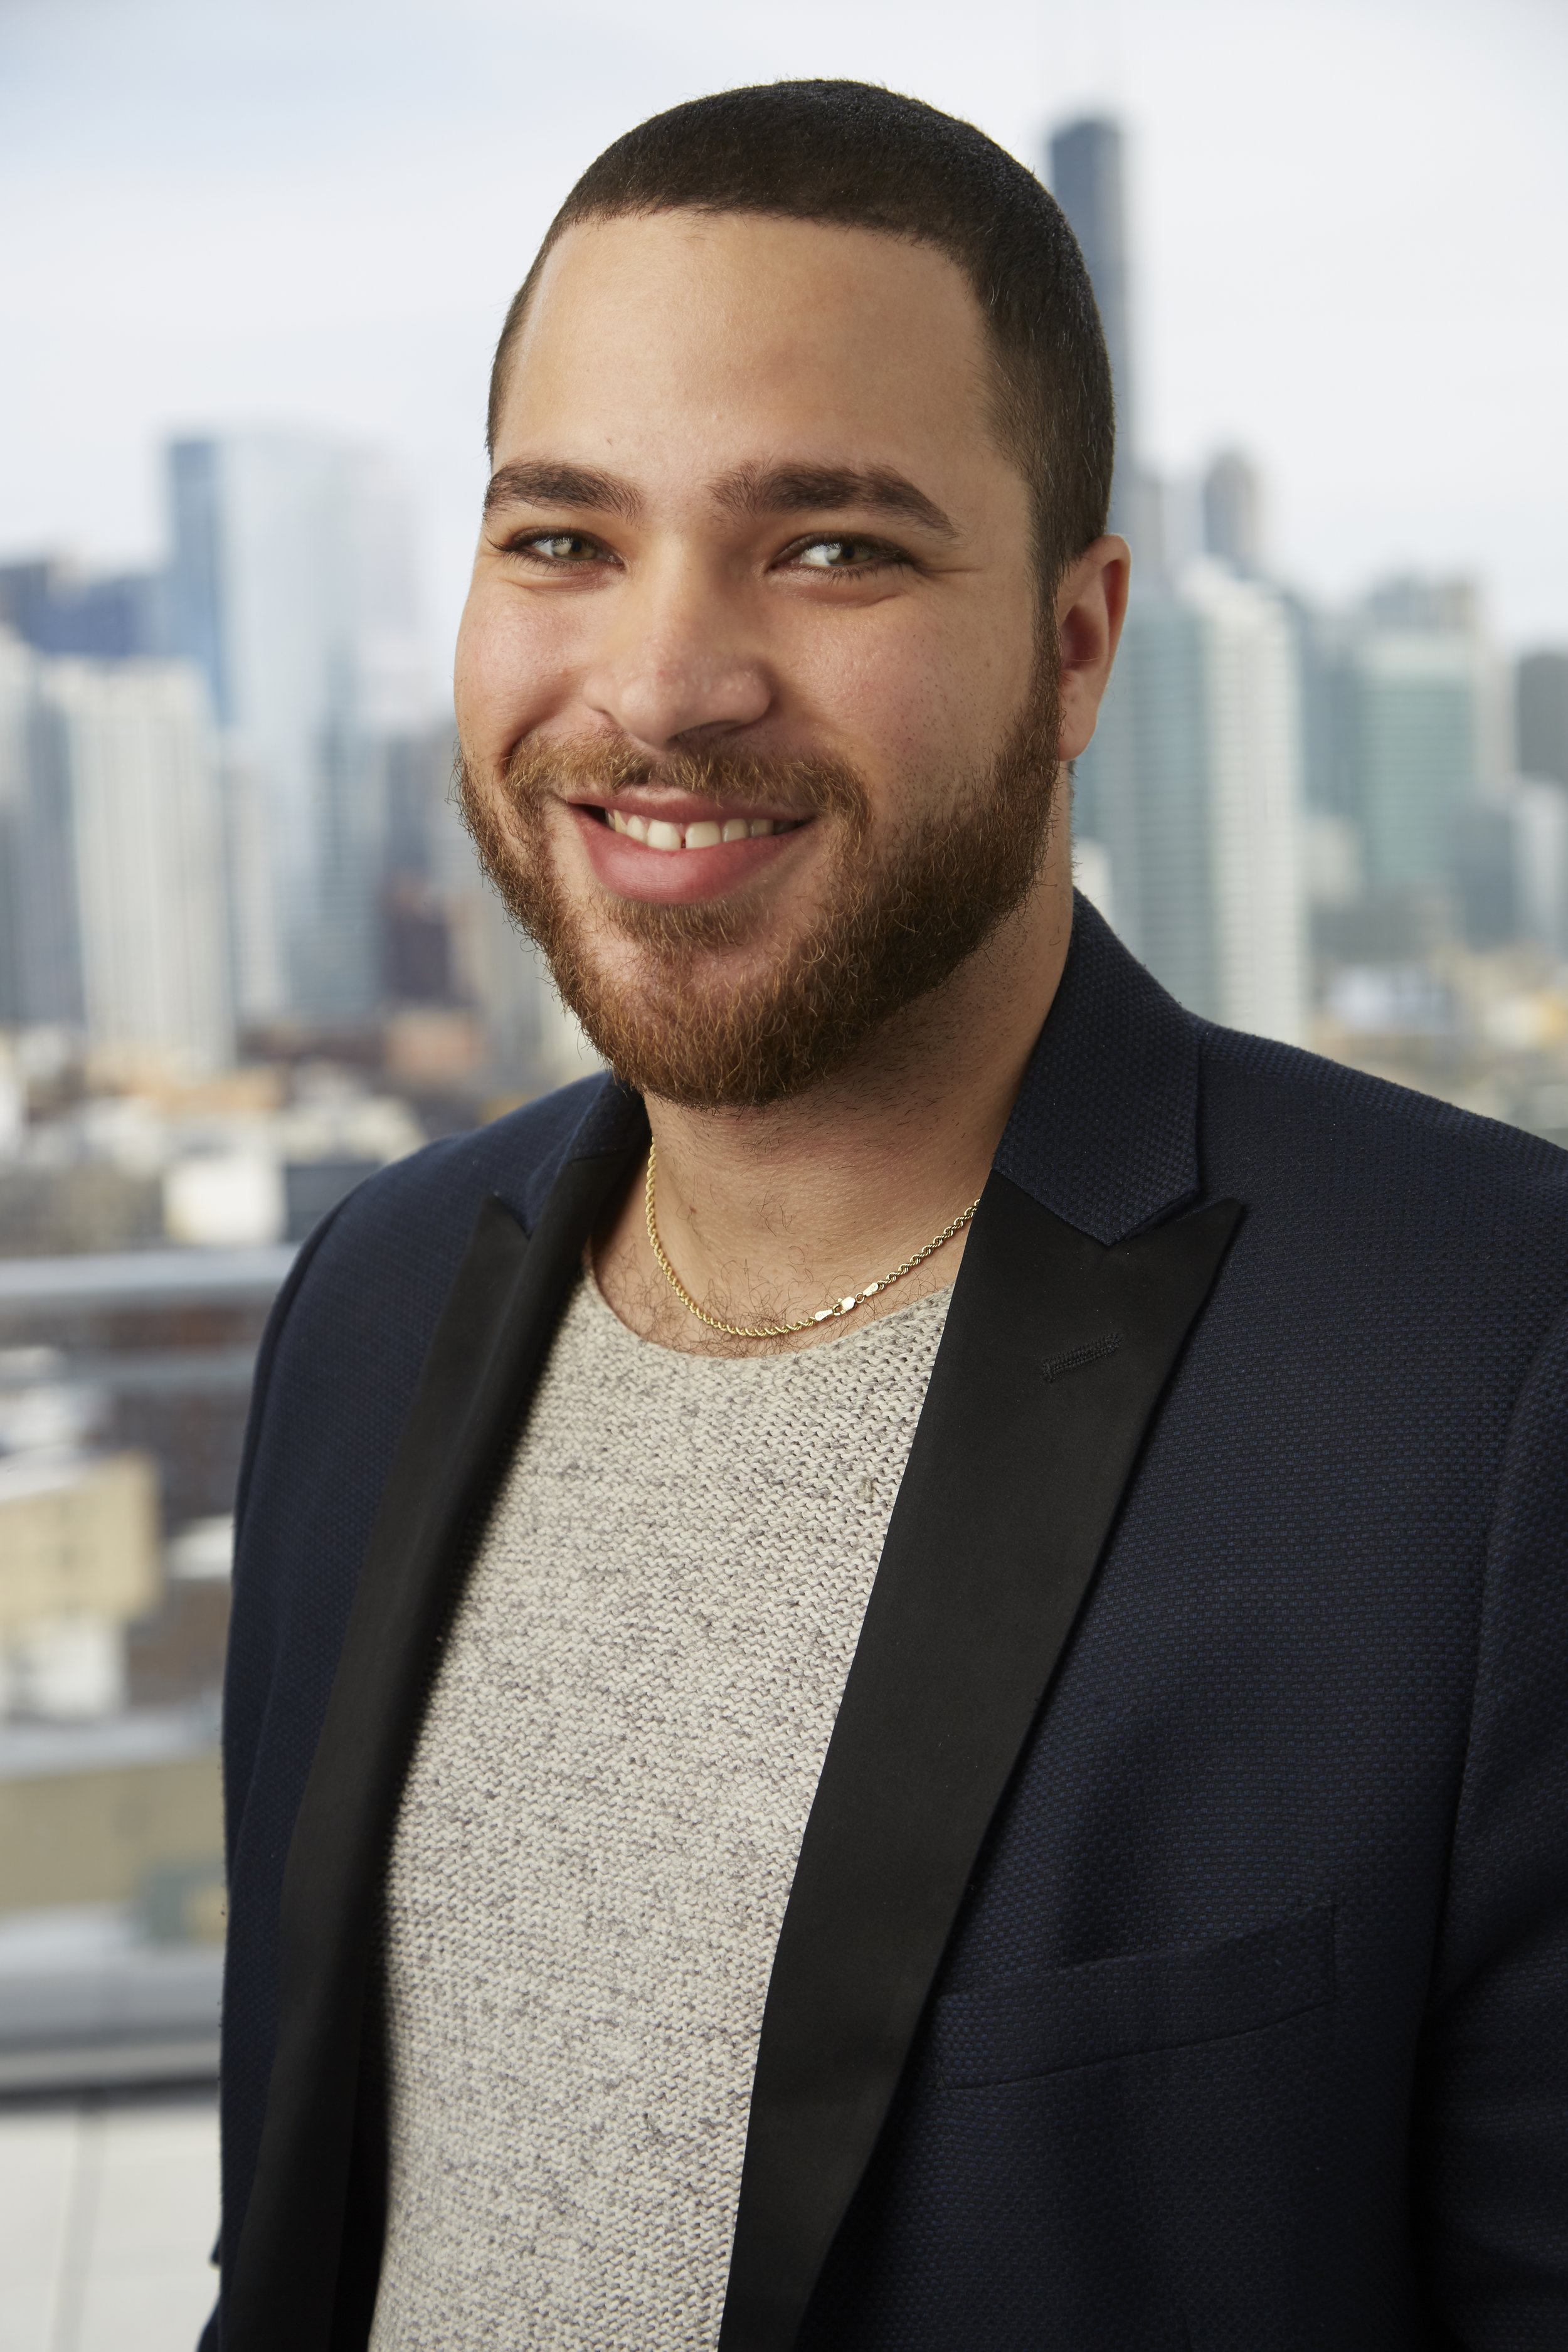 Ashton Irby - Ashton is a veteran in the luxury rental market. He has worked as a leasing agent for many of the properties and knows first hand what it takes to find the perfect apartment! He is also a team leader and trains and manages new CRG agents.